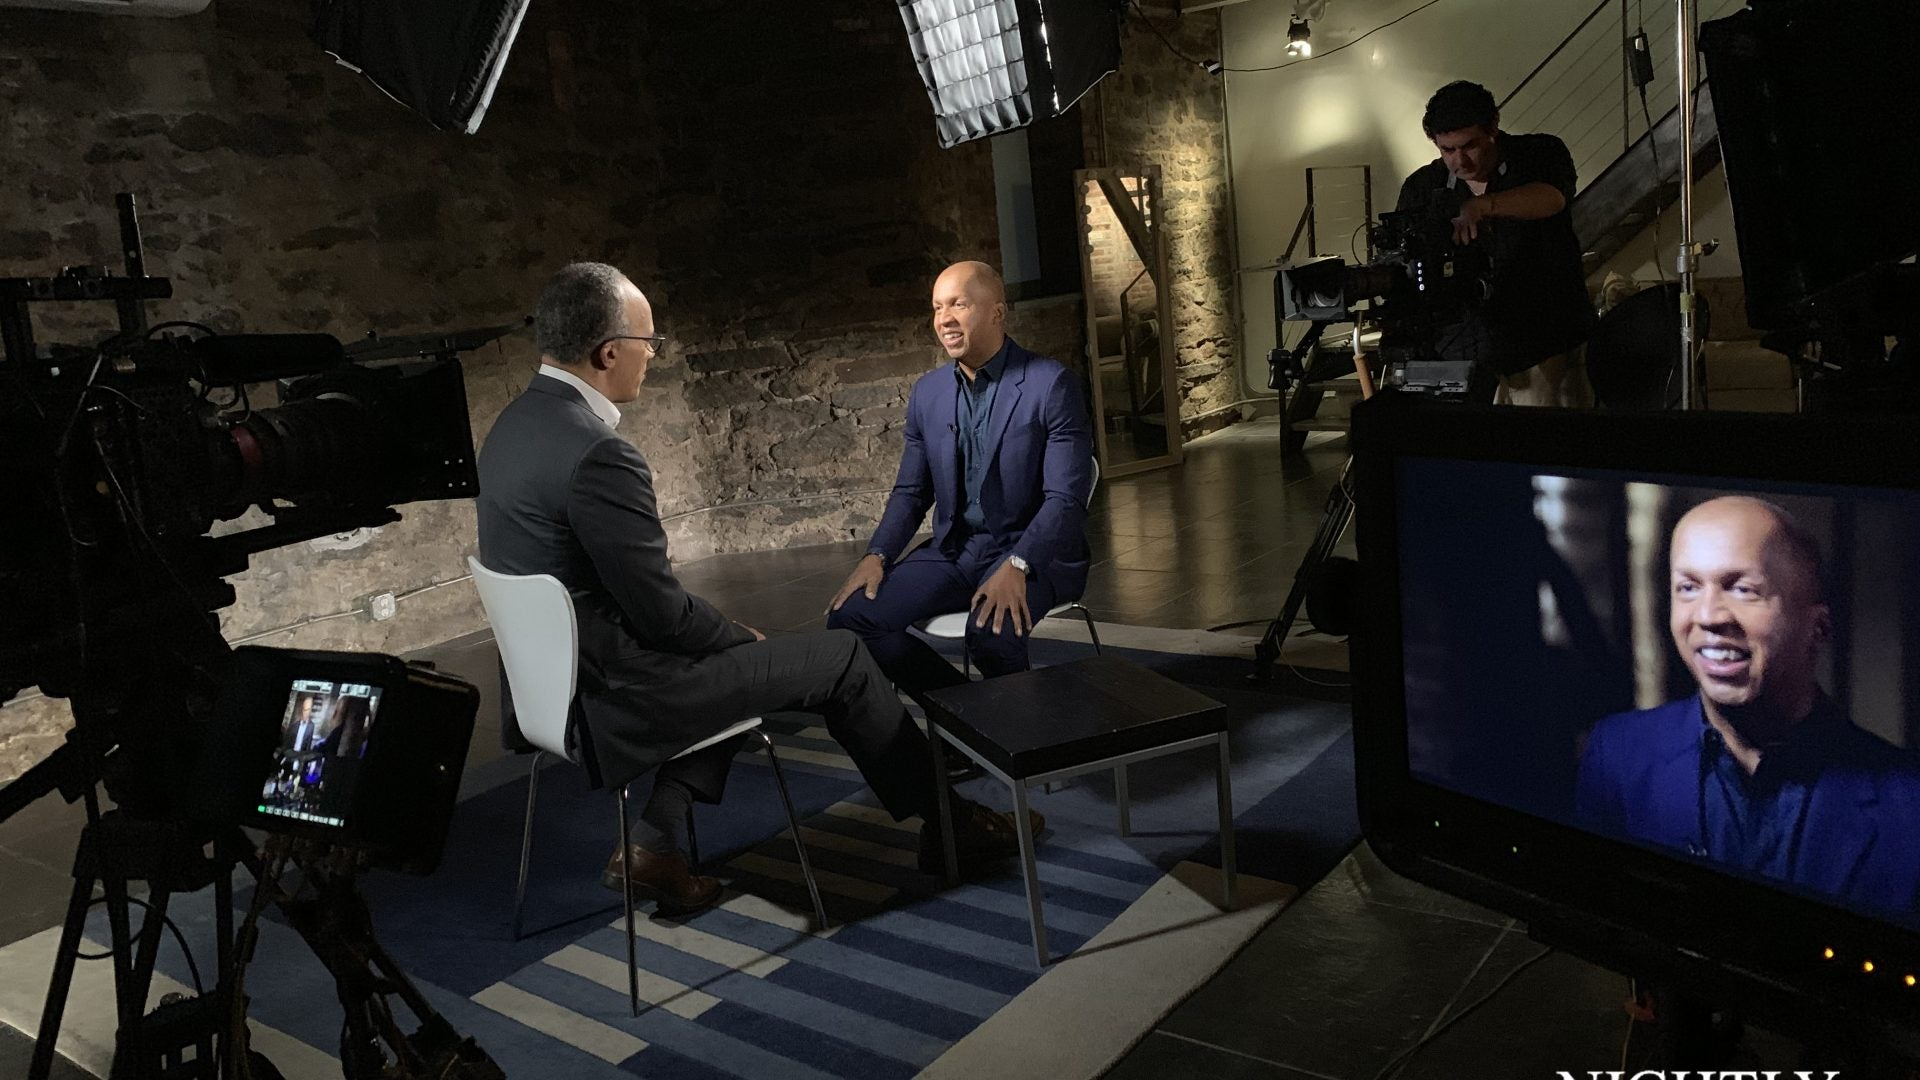 Exclusive Preview: Bryan Stevenson Sits Down With Lester Holt Ahead Of HBO Documentary